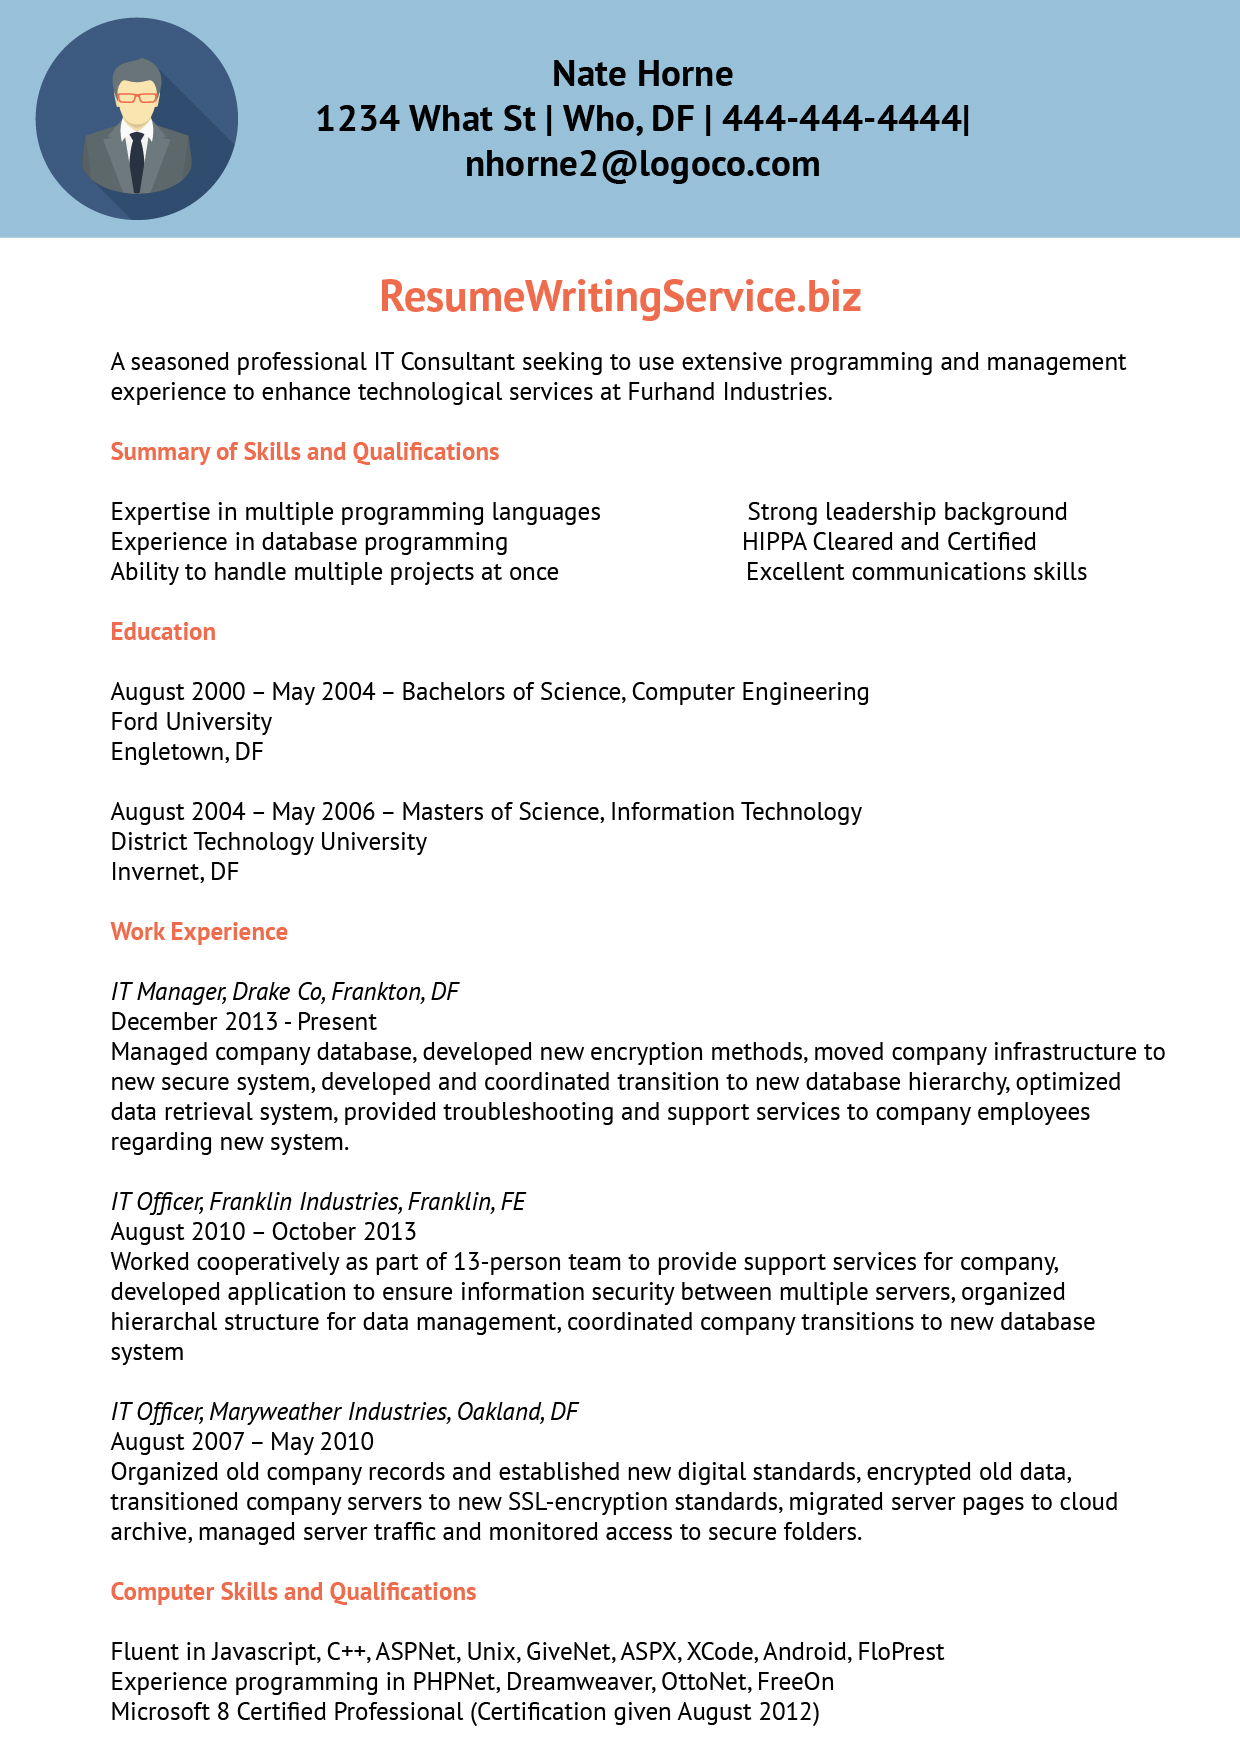 consultant chef resume professional resume cover letter sample consultant chef resume chef resume sample chef resumes livecareer technical resume samples resume for information technology